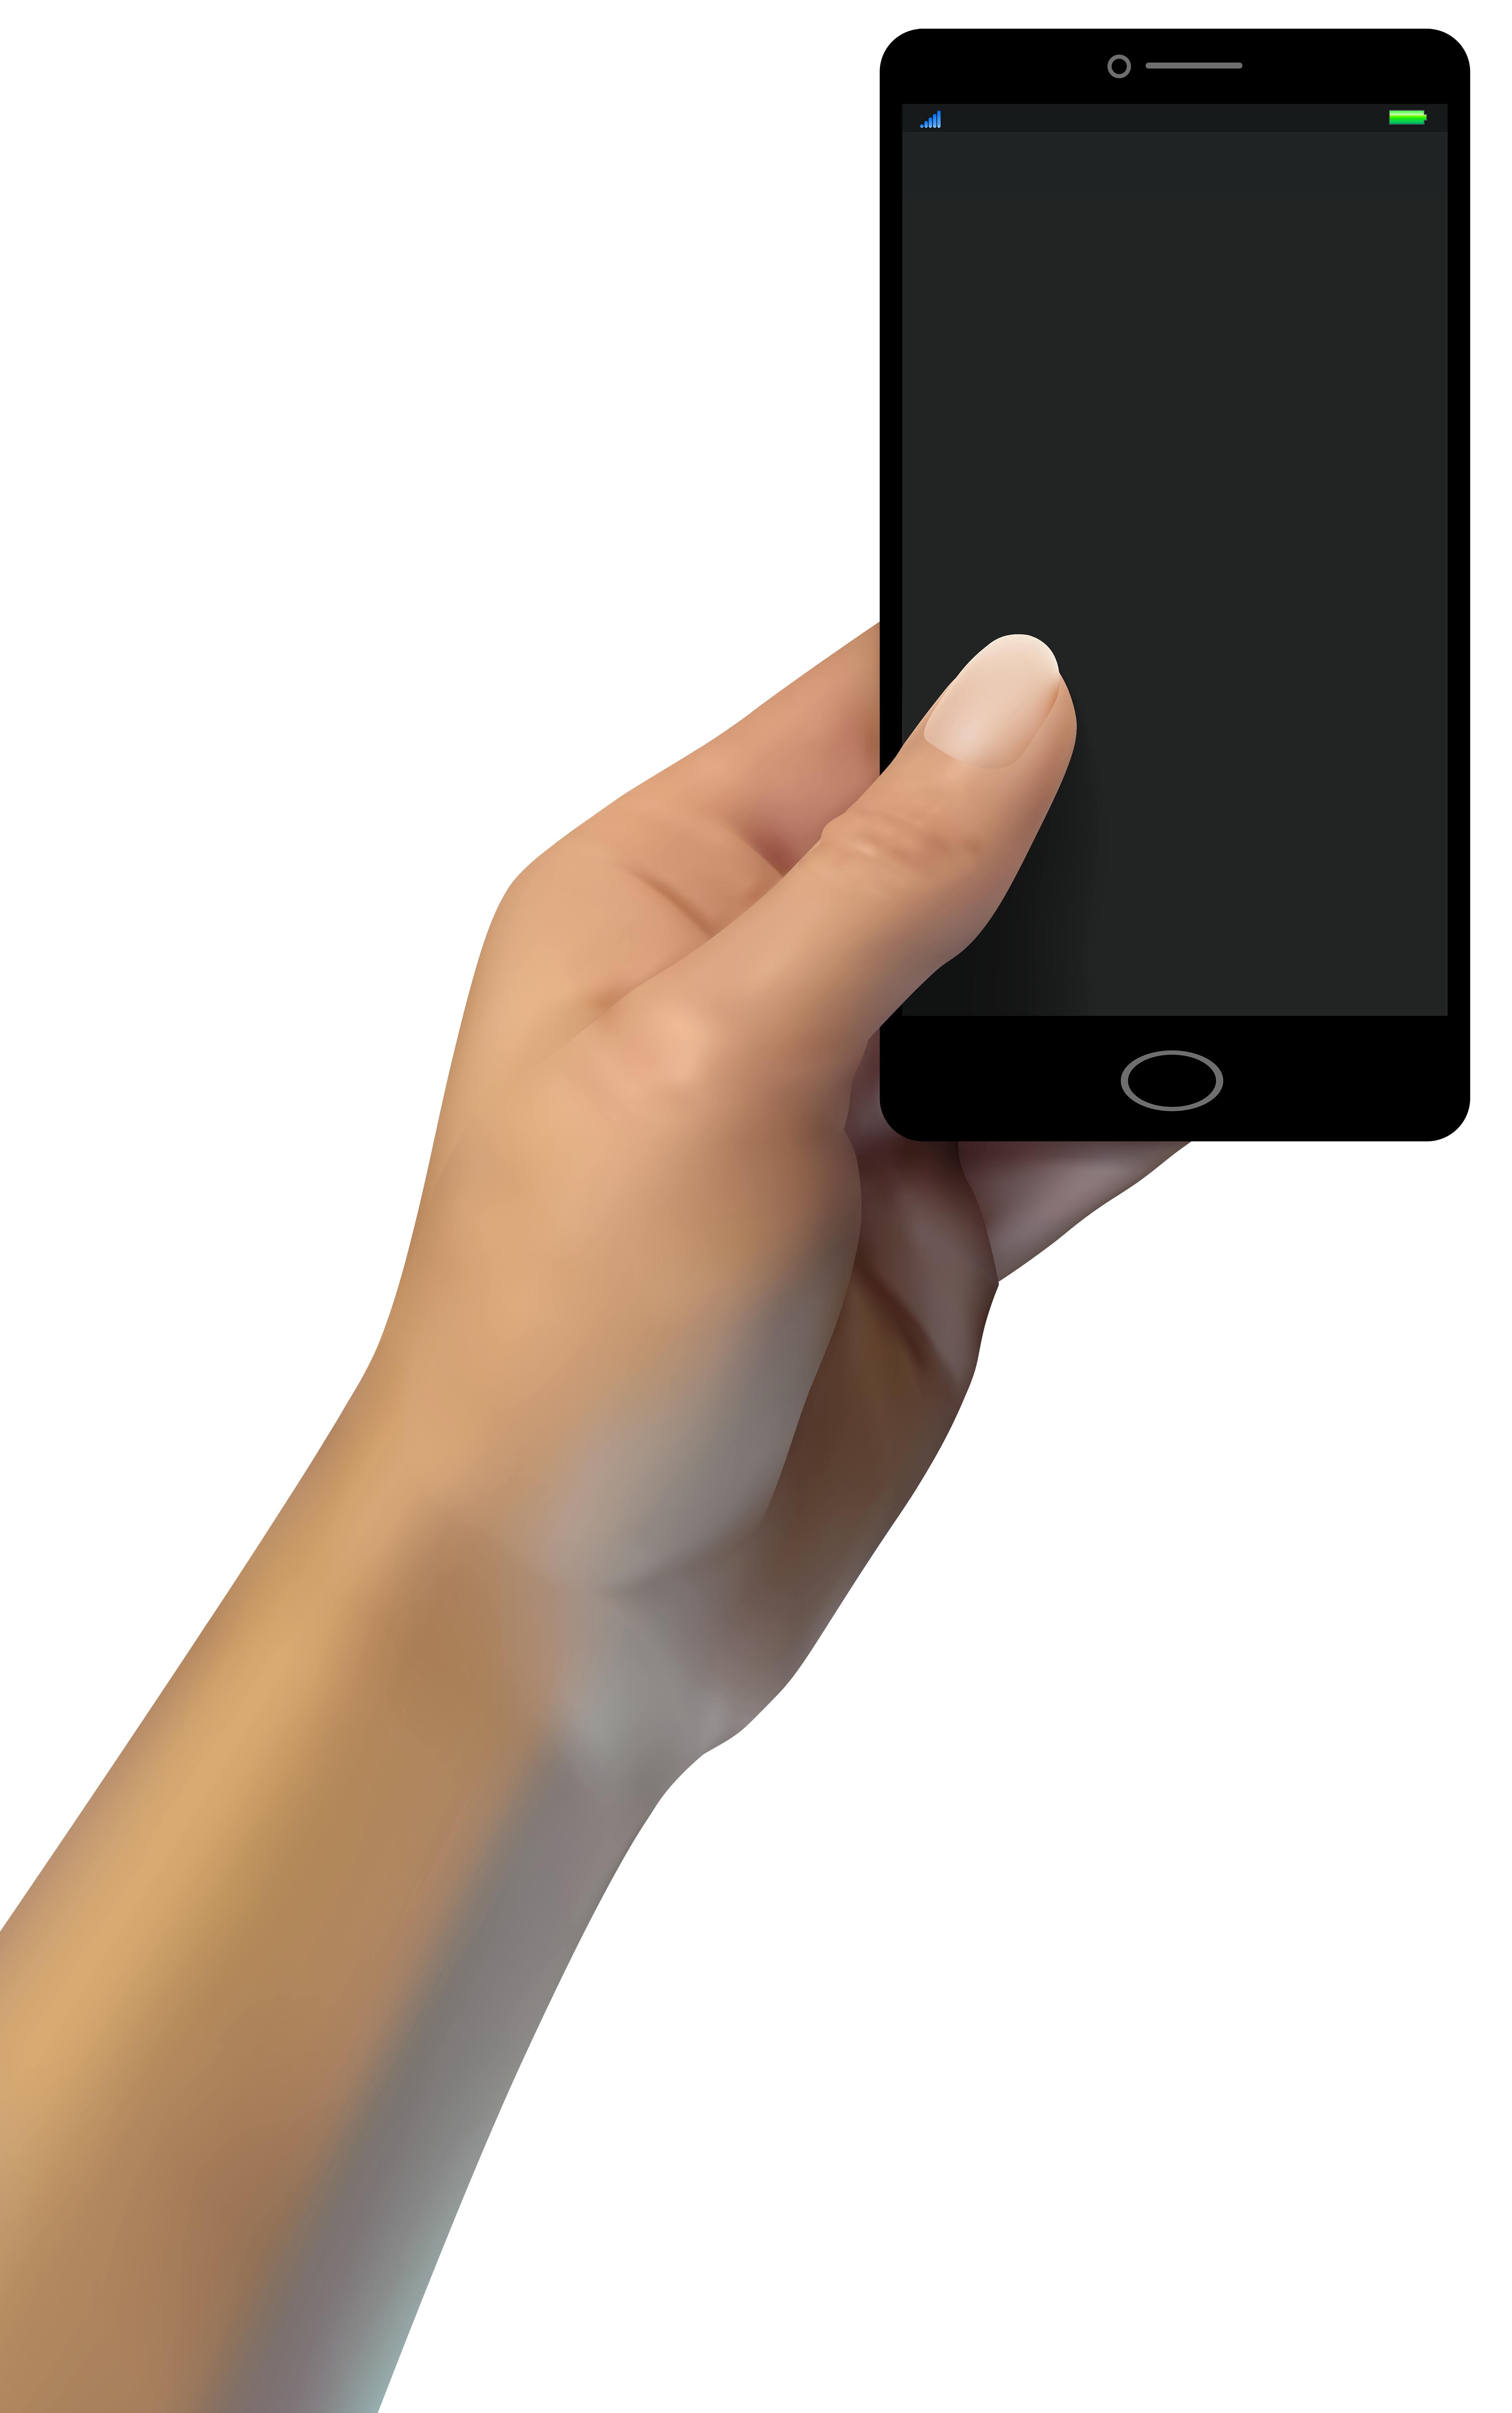 Clipart sun hand. Phone in png image